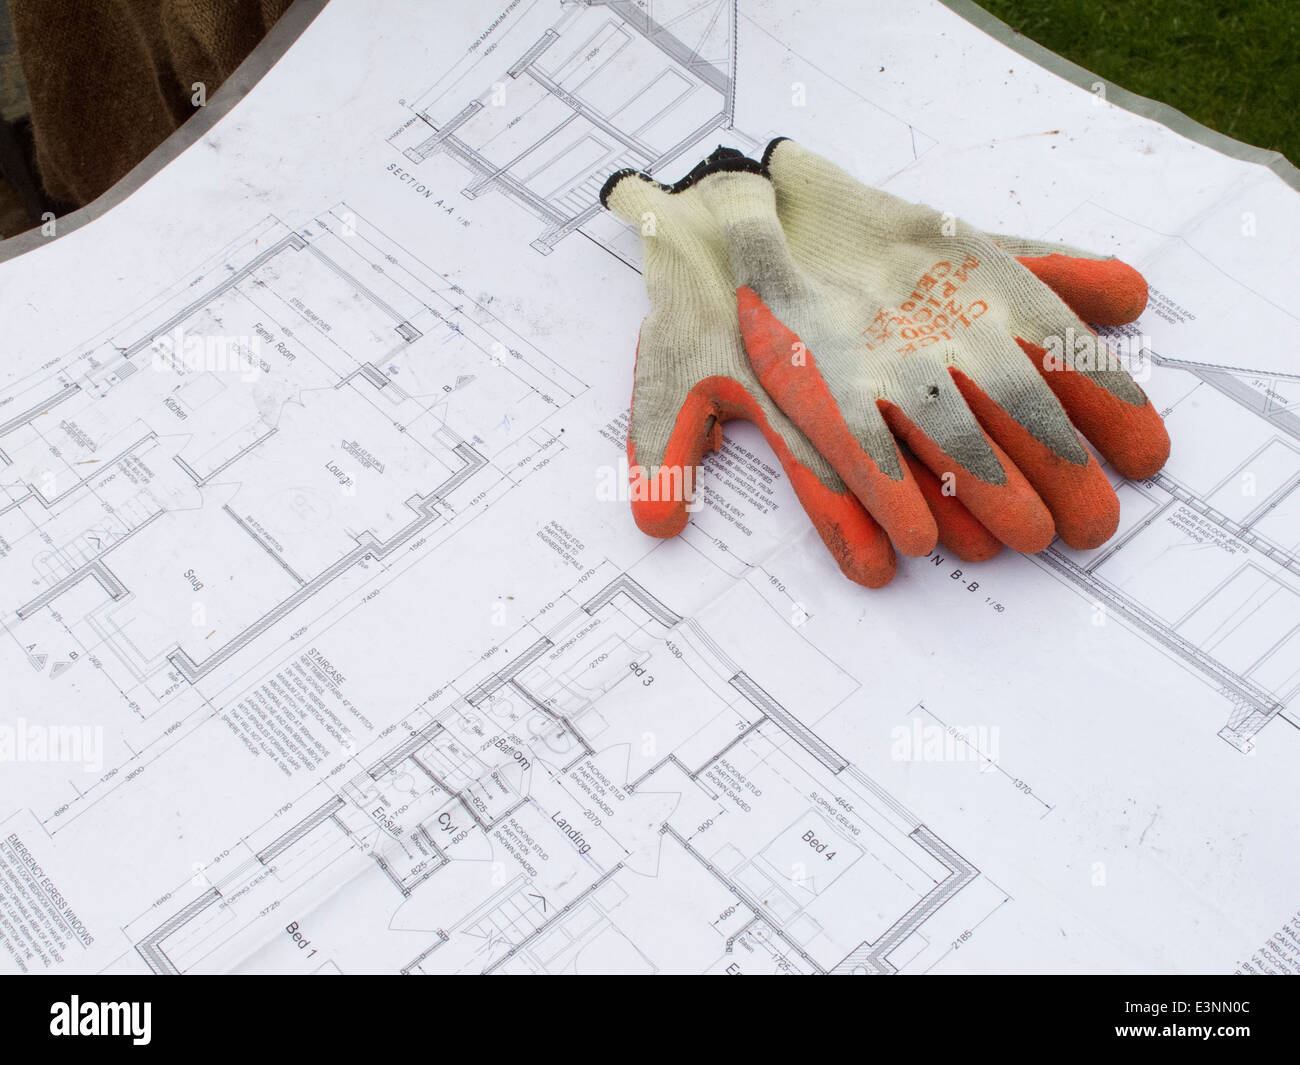 Architects Drawing Stock Photos & Architects Drawing Stock Images ...